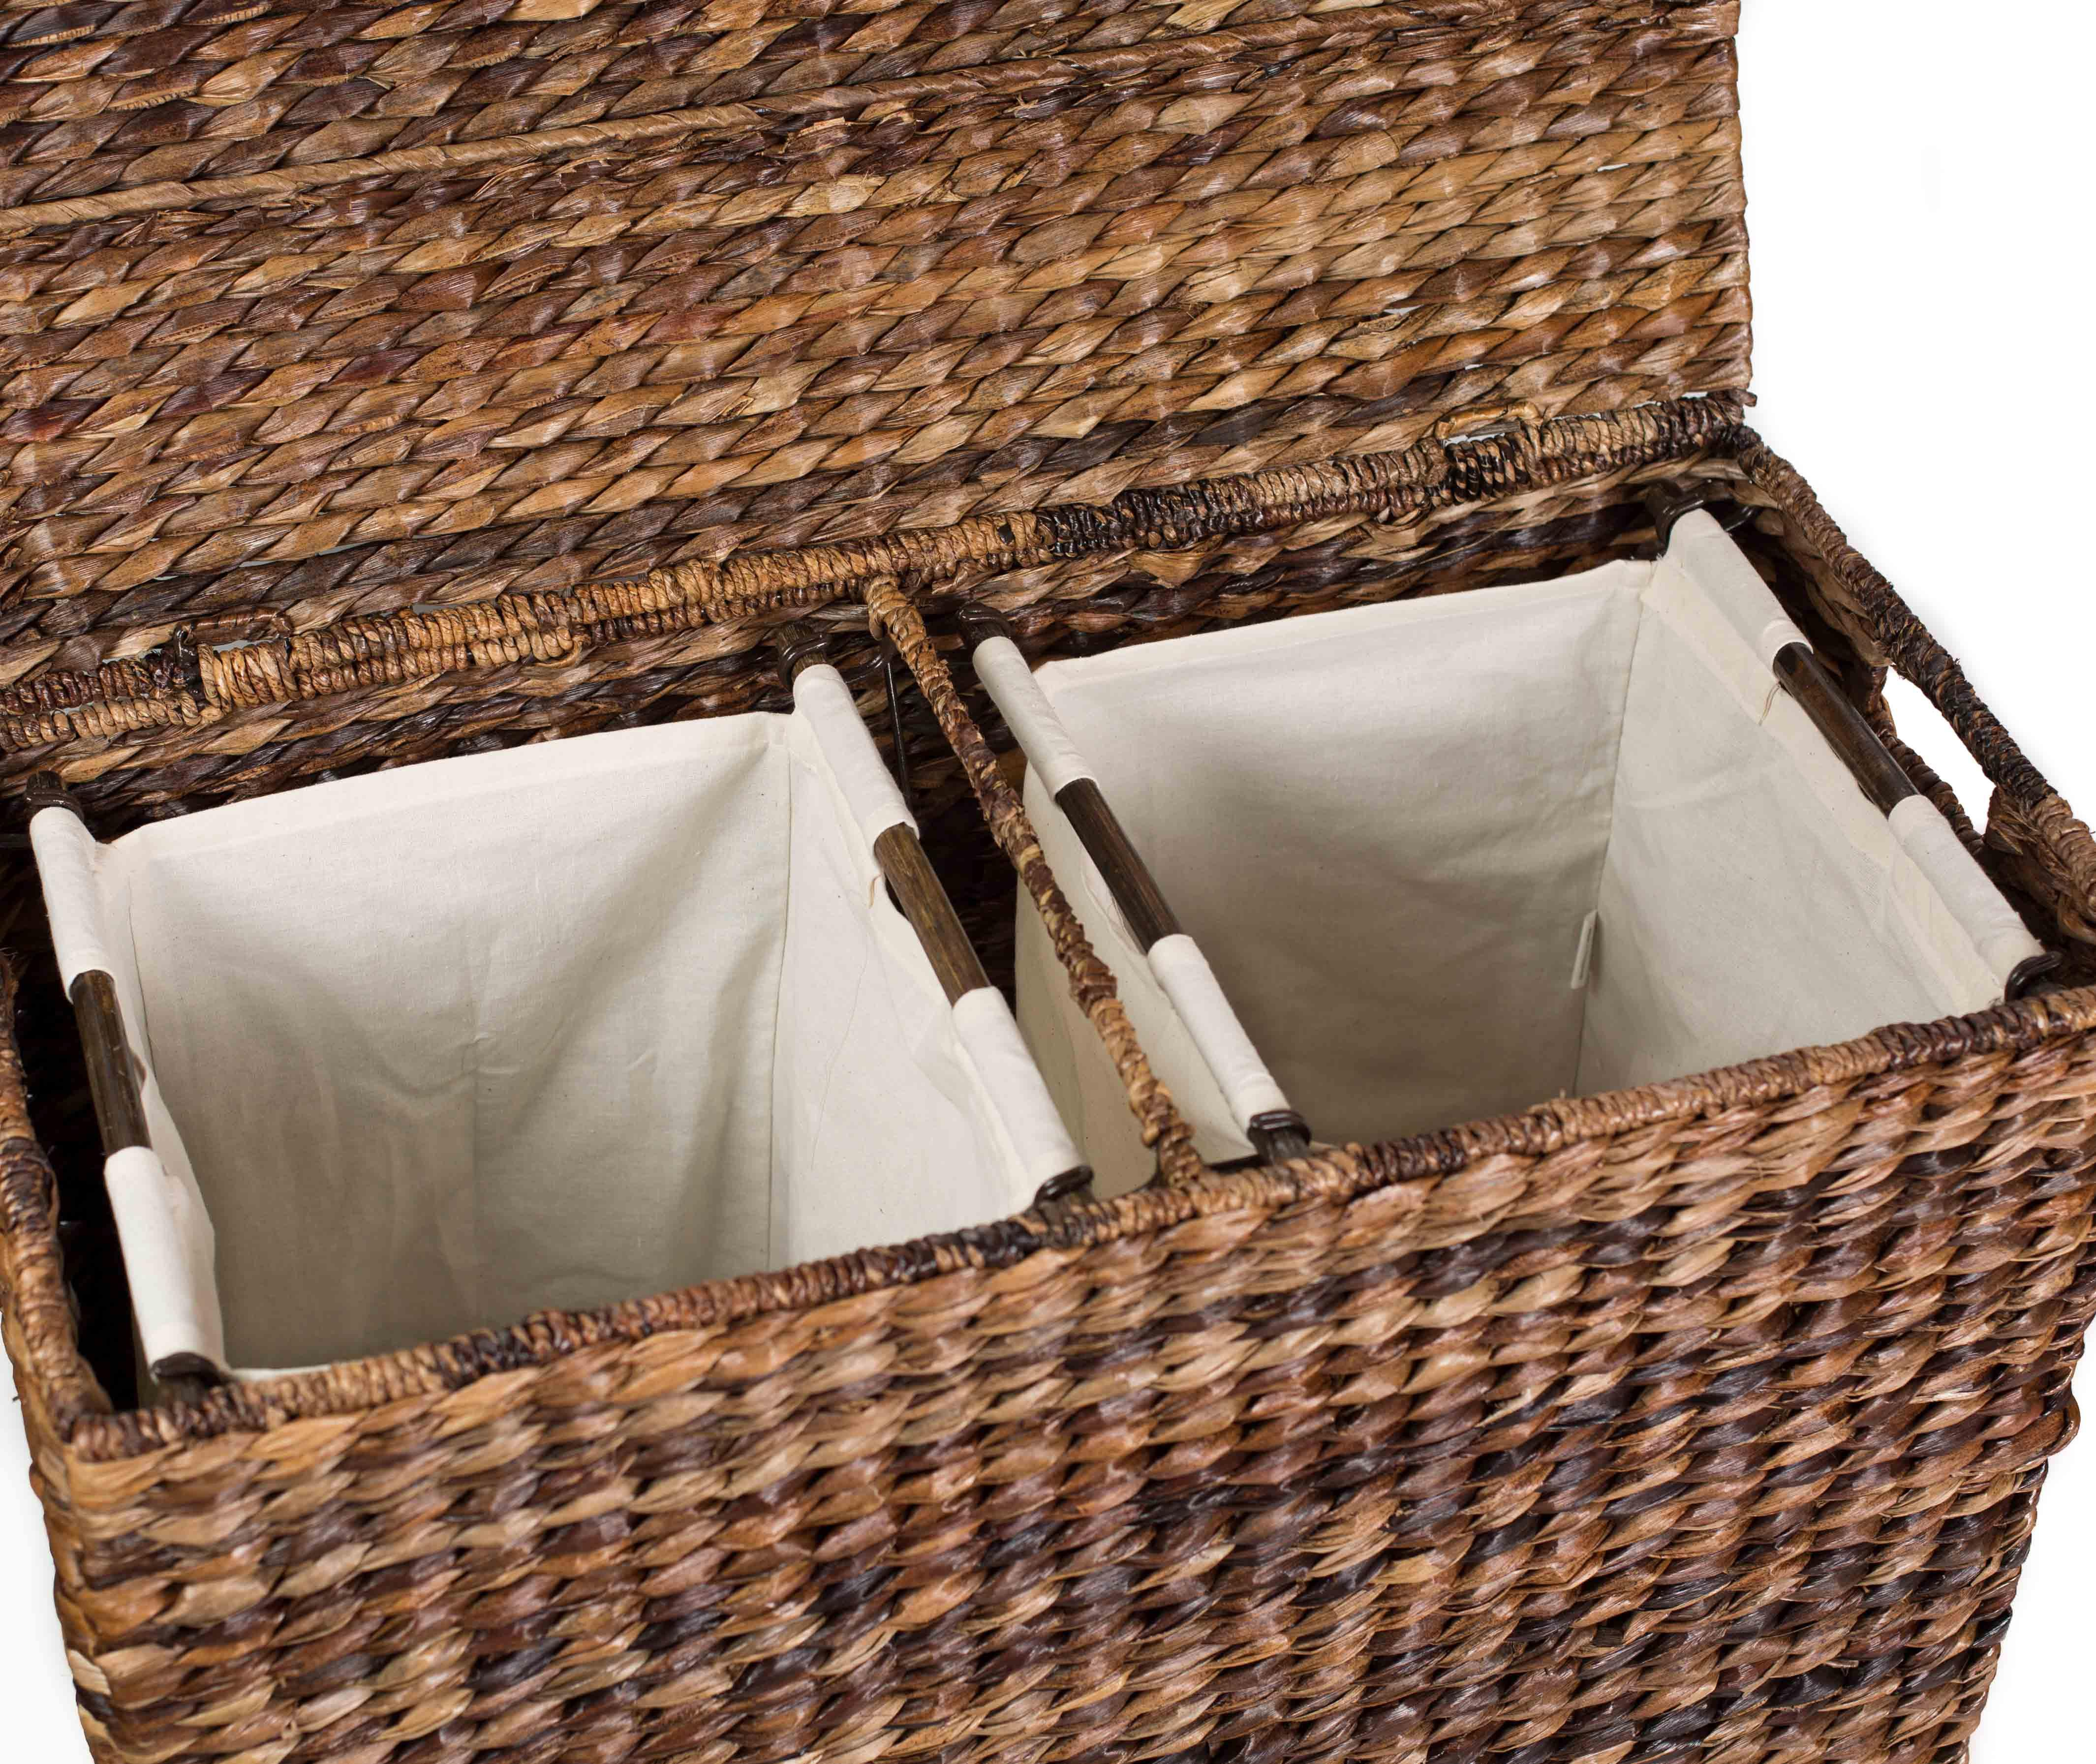 Wicker Basket With Sections : Birdrock home oversized divided hamper with